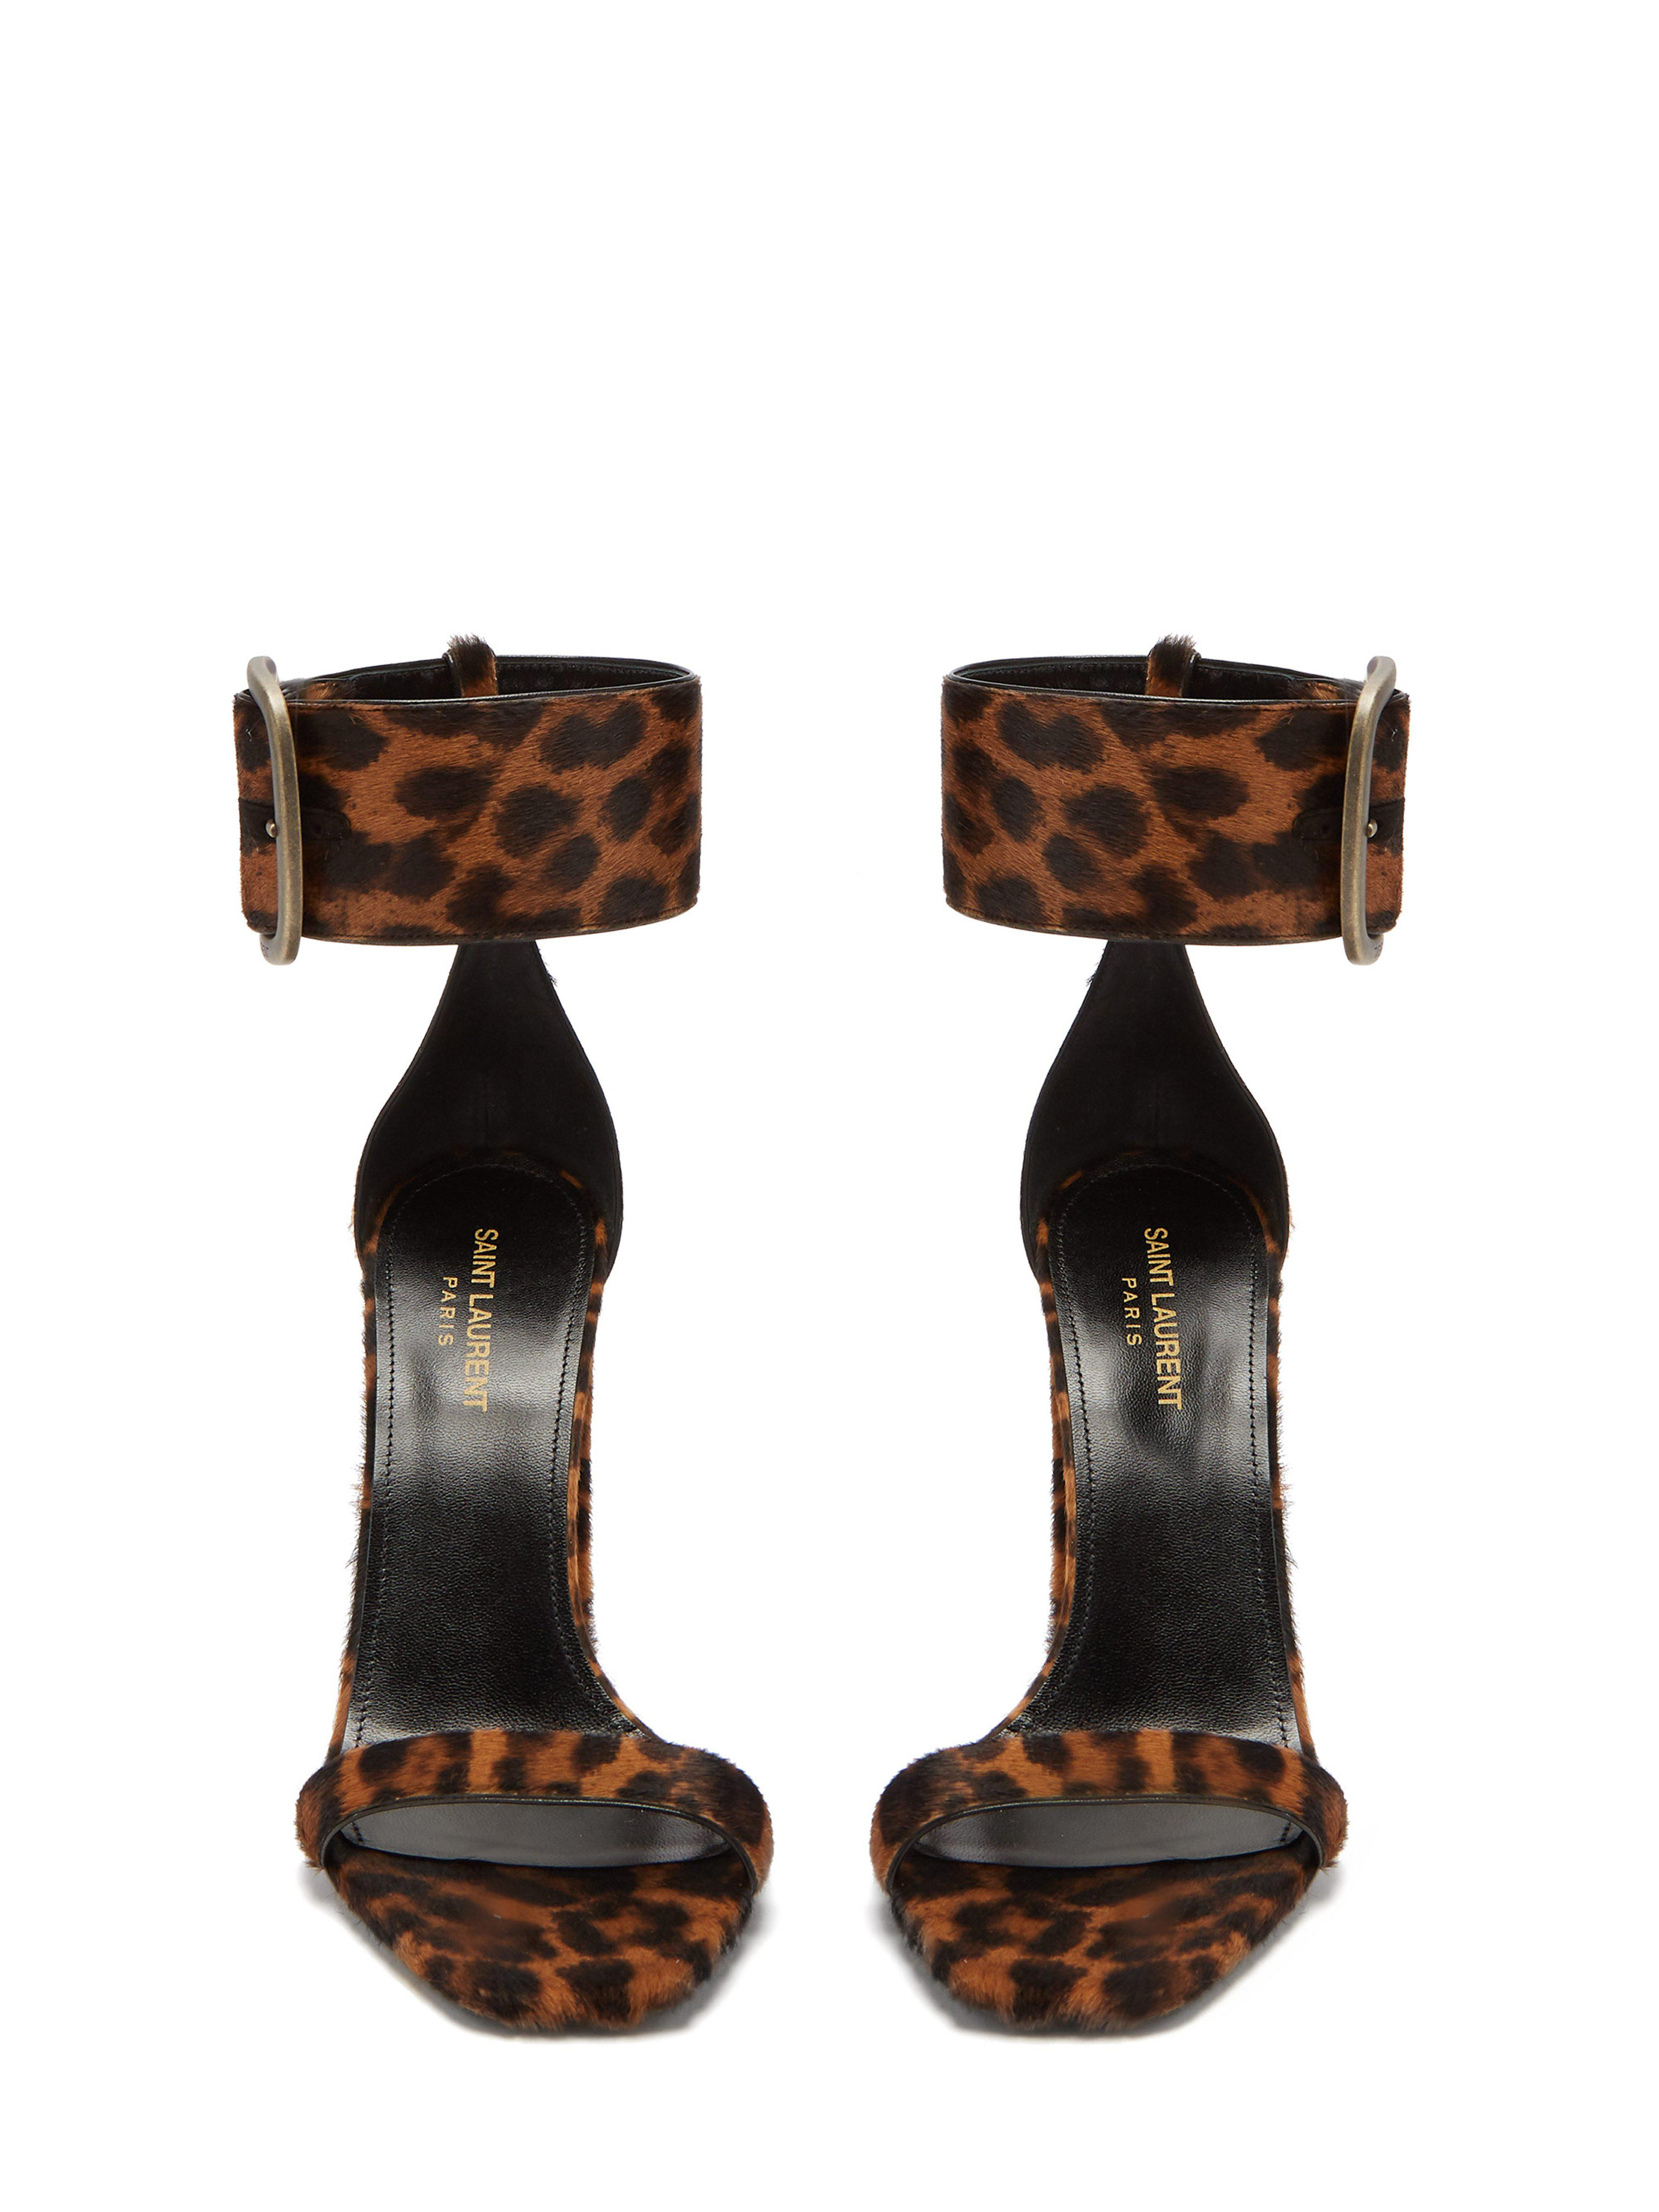 74ee9edccd Saint Laurent Loulou Buckled Leopard Print Sandals in Brown - Lyst